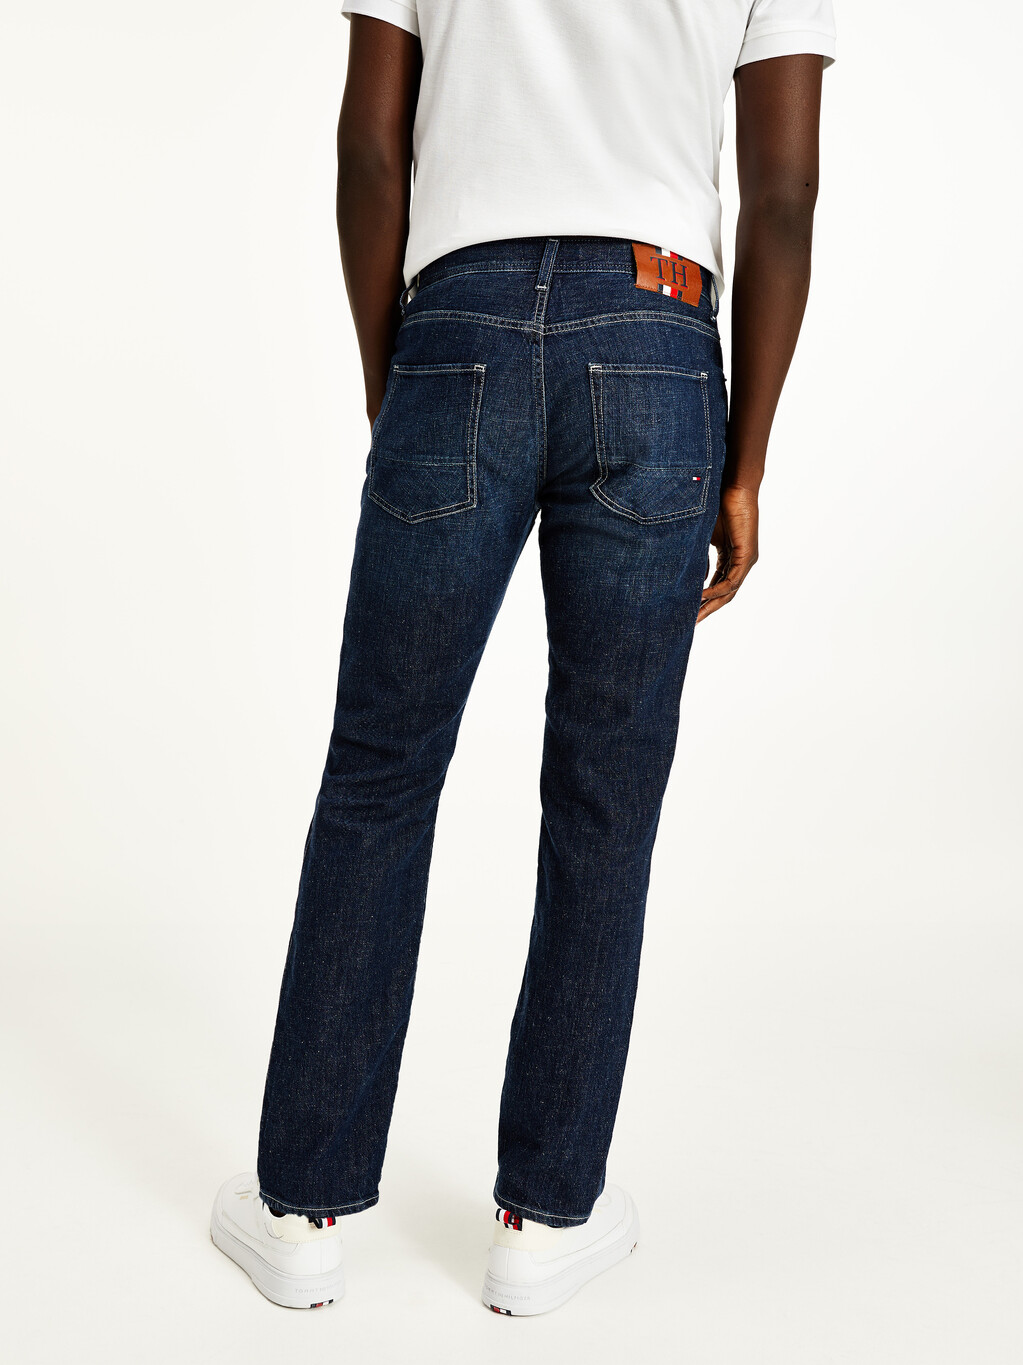 Denton Straight Washed Jeans